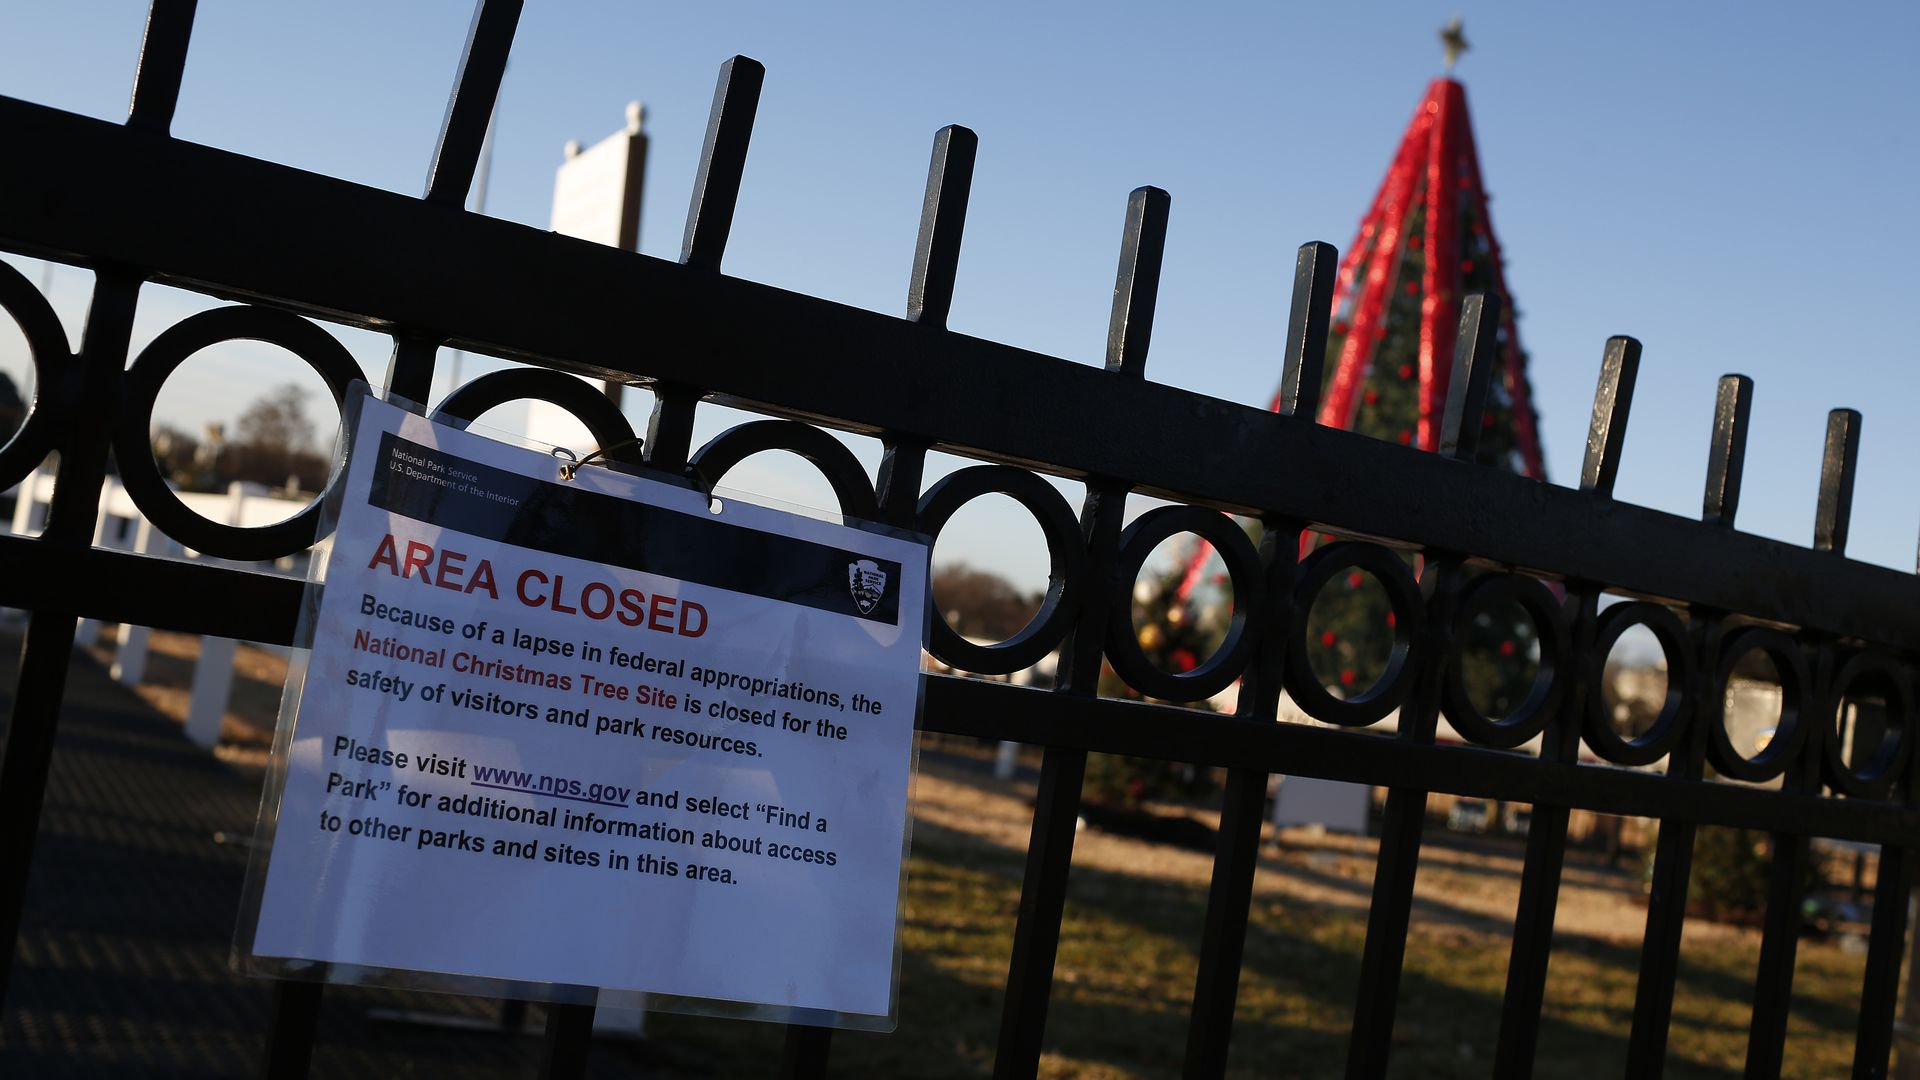 National christmas tree closed due to shutdown